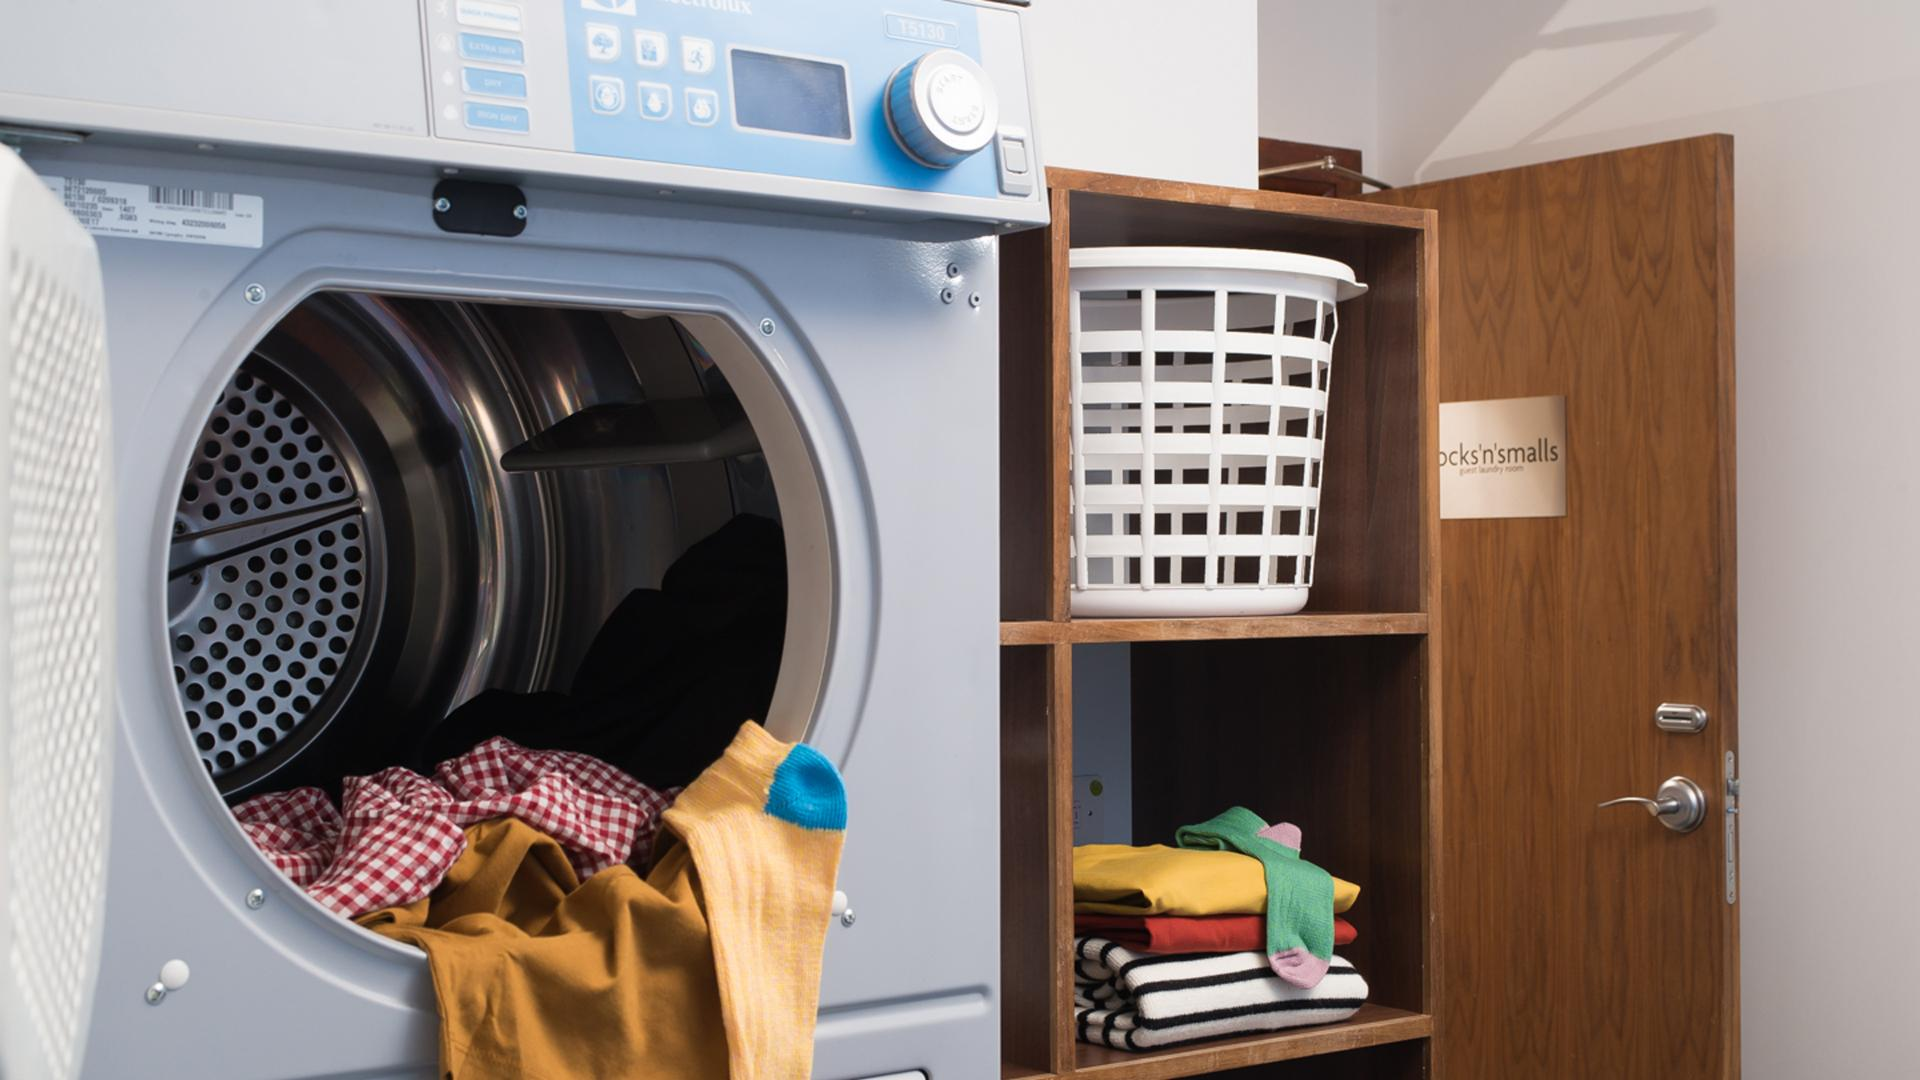 Laundry Facilities at Newcastle Staybridge Suites Newcastle - Citybase Apartments